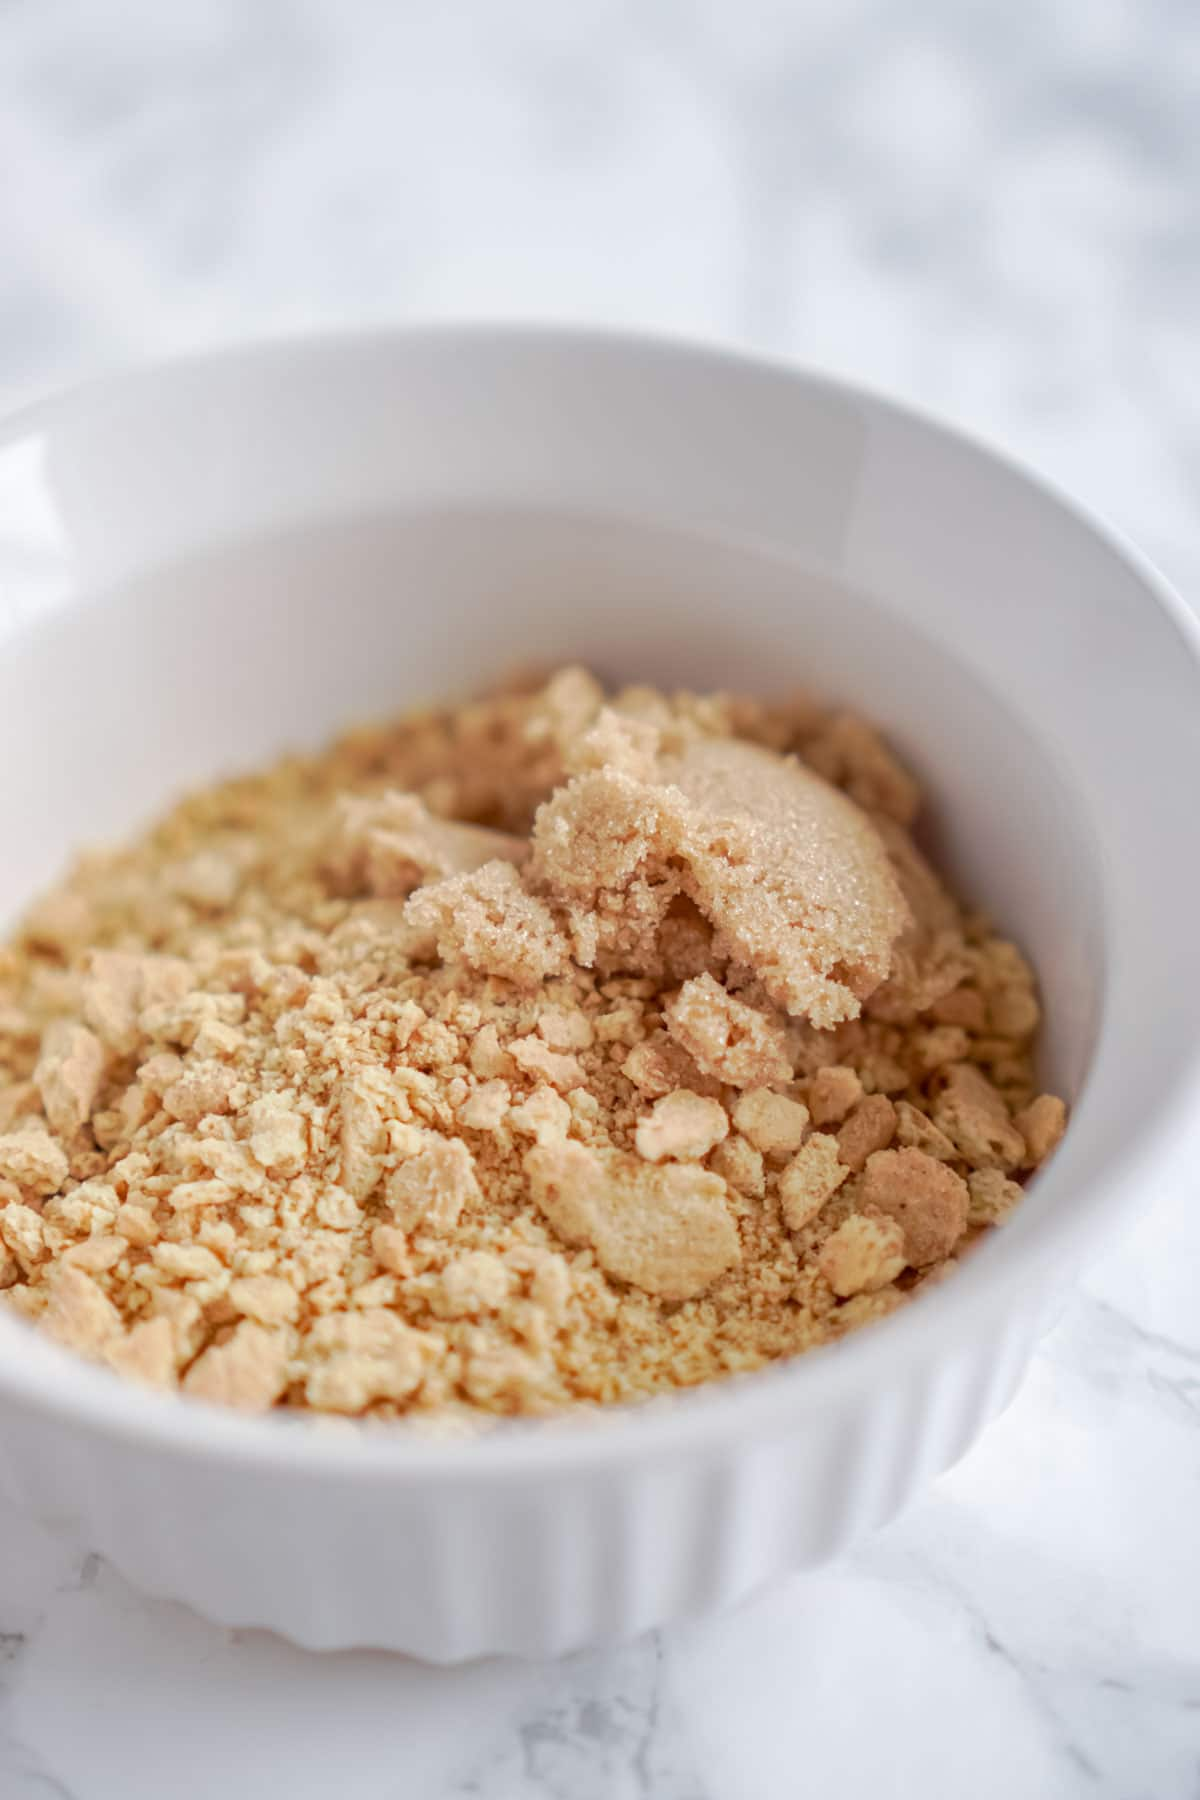 White bowl with graham cracker crumbs and brown sugar